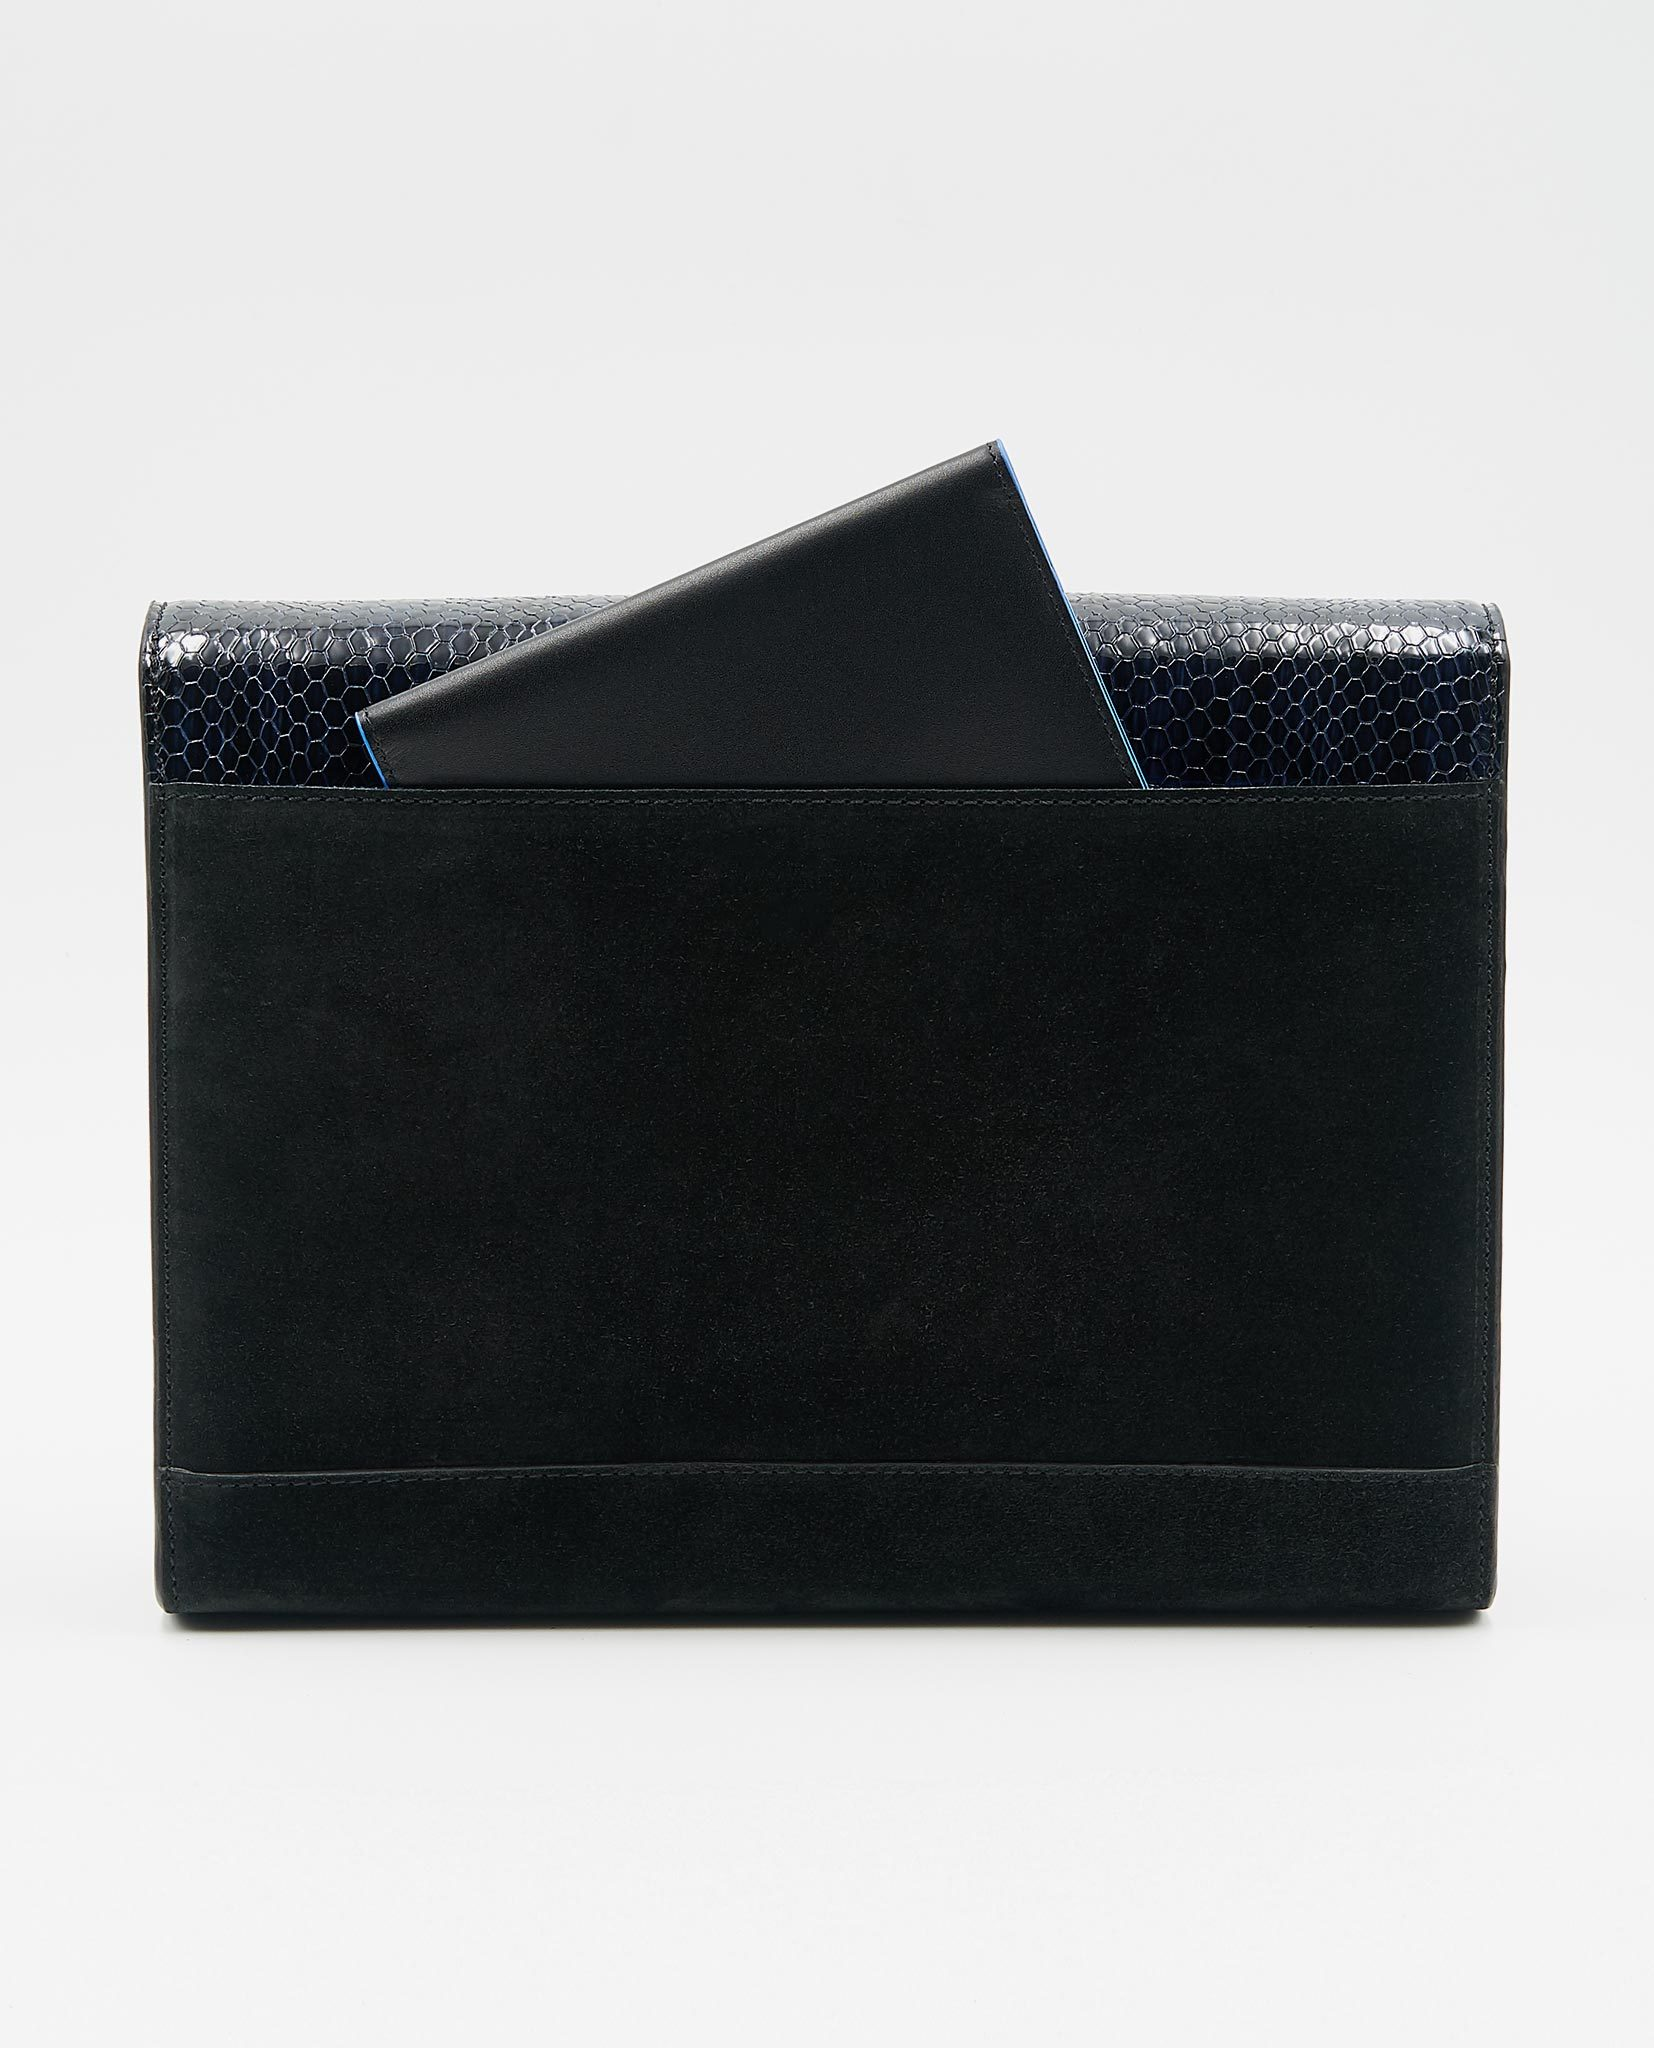 Soofre_Clutch_limited_Black-Snake_3